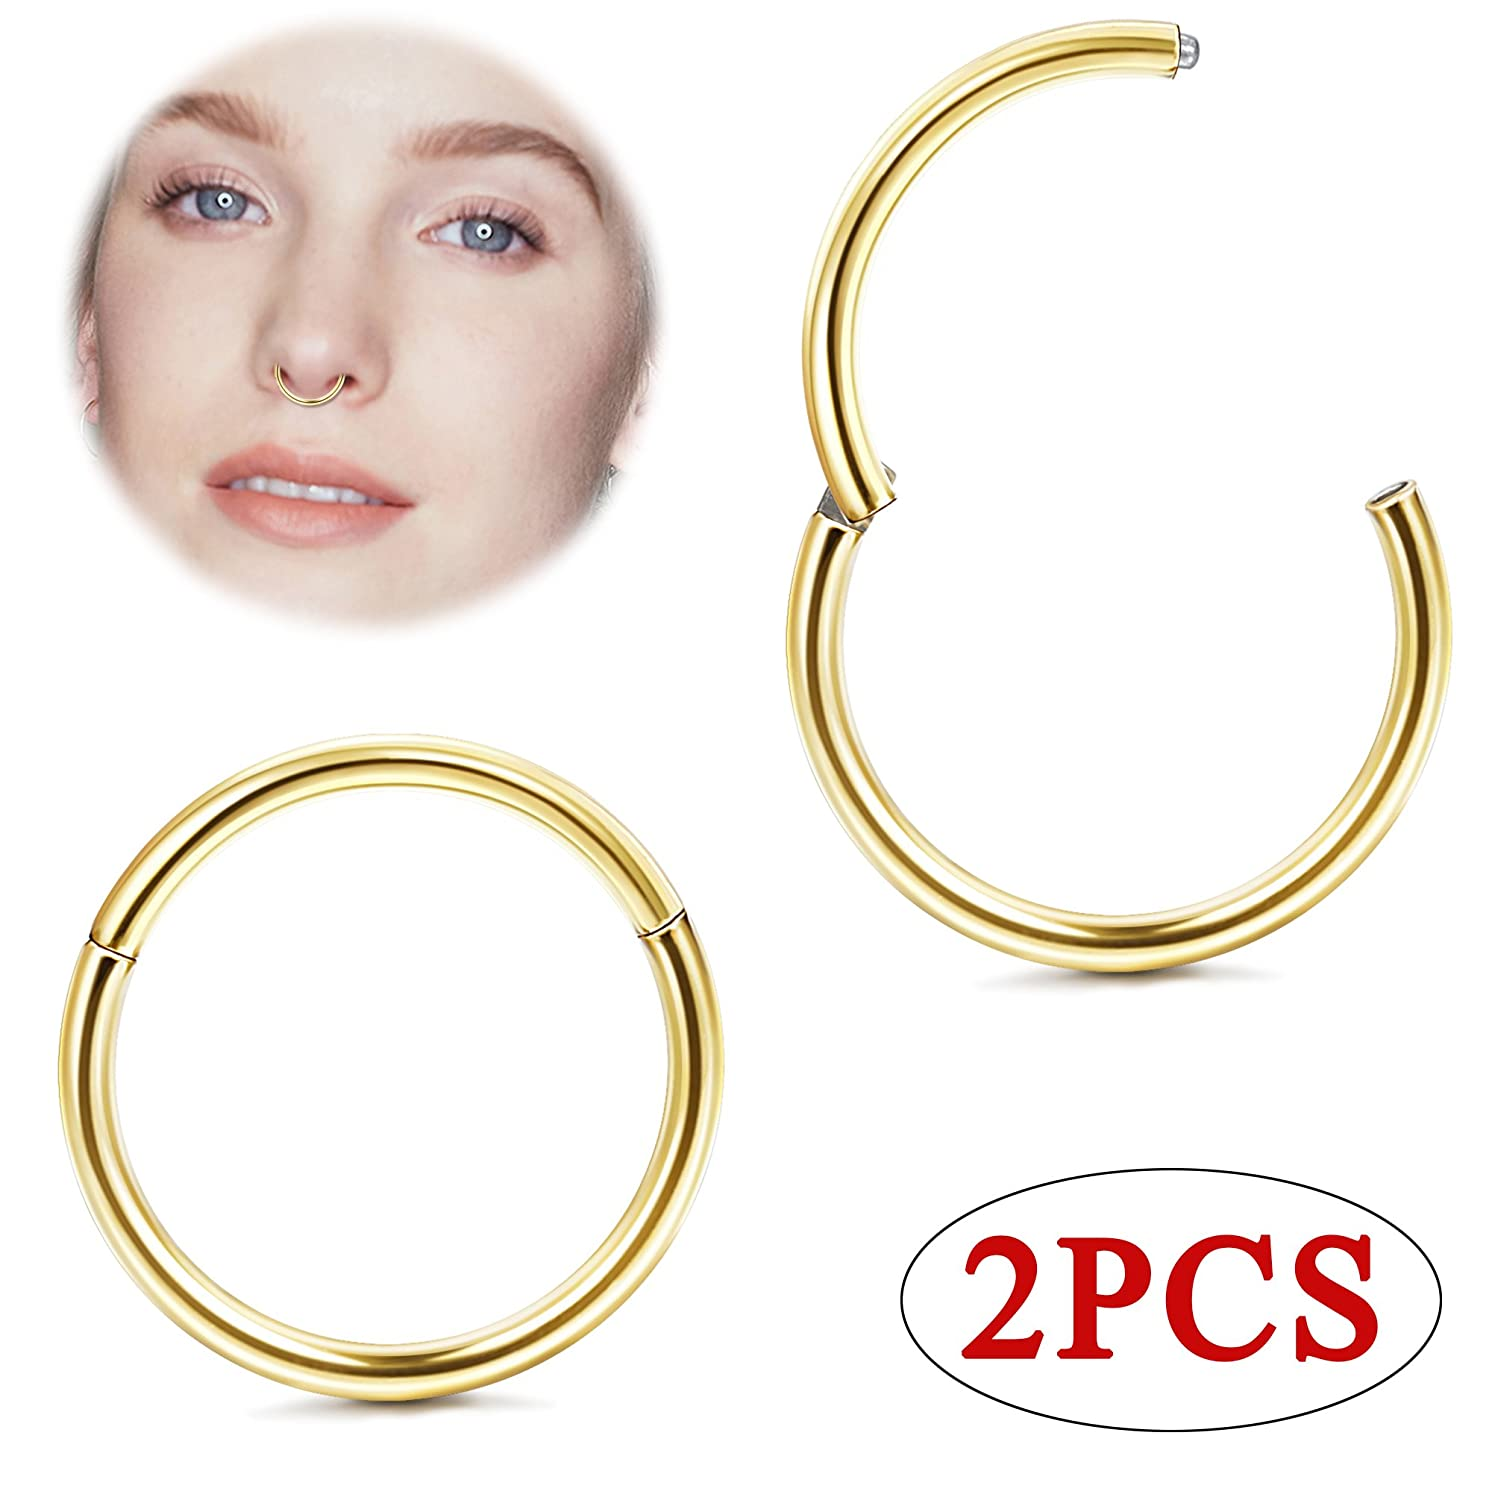 Jstyle 1Pair 20G Stainless Steel Hinged Clicker Segment Nose Ring Hoops Helix Daith Cartilage Tragus Sleeper Earrings Body Piercing WCC7298-S